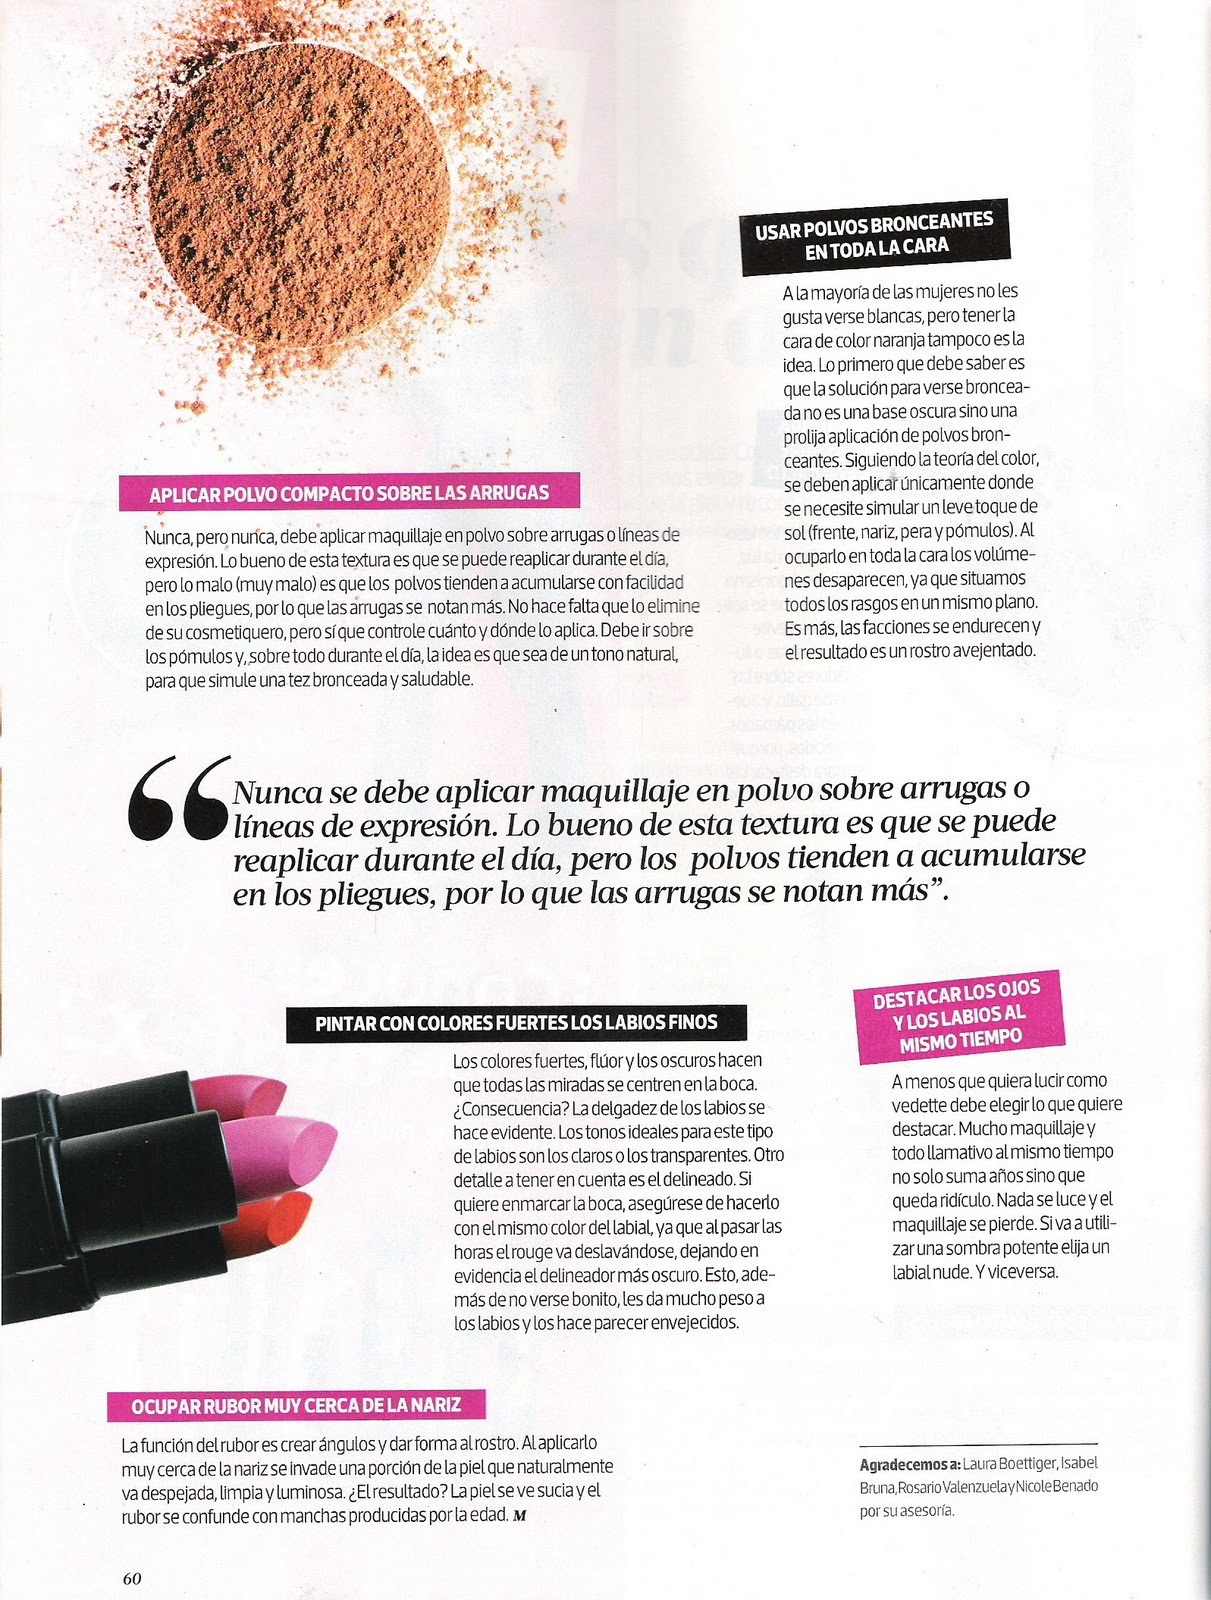 Press: Revista Mujer 15 de enero – Make Up Insiders